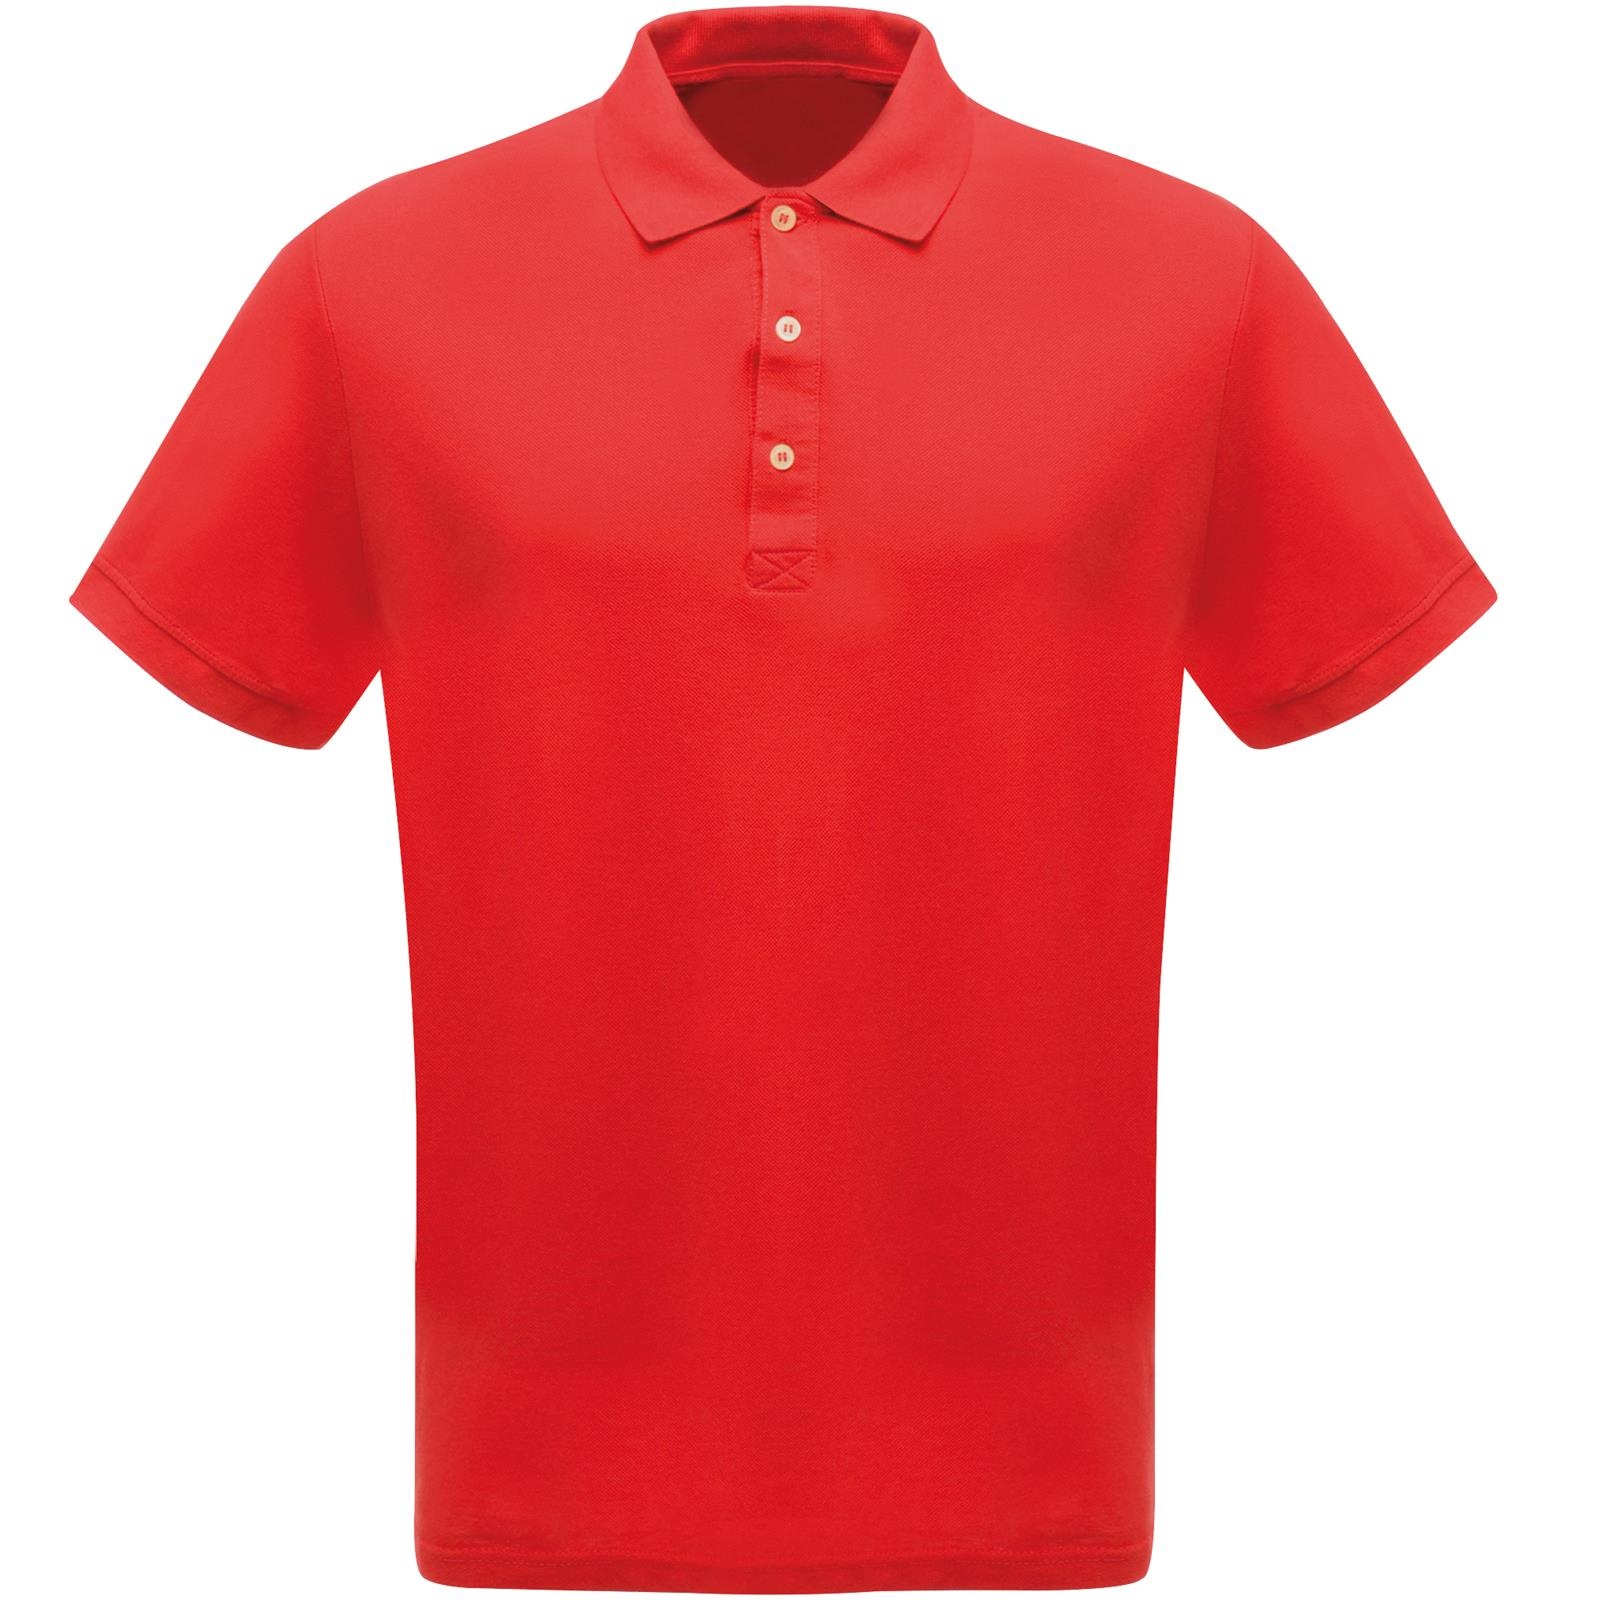 Mens regatta comfortable cotton pique collared classic for Mens xs golf shirts